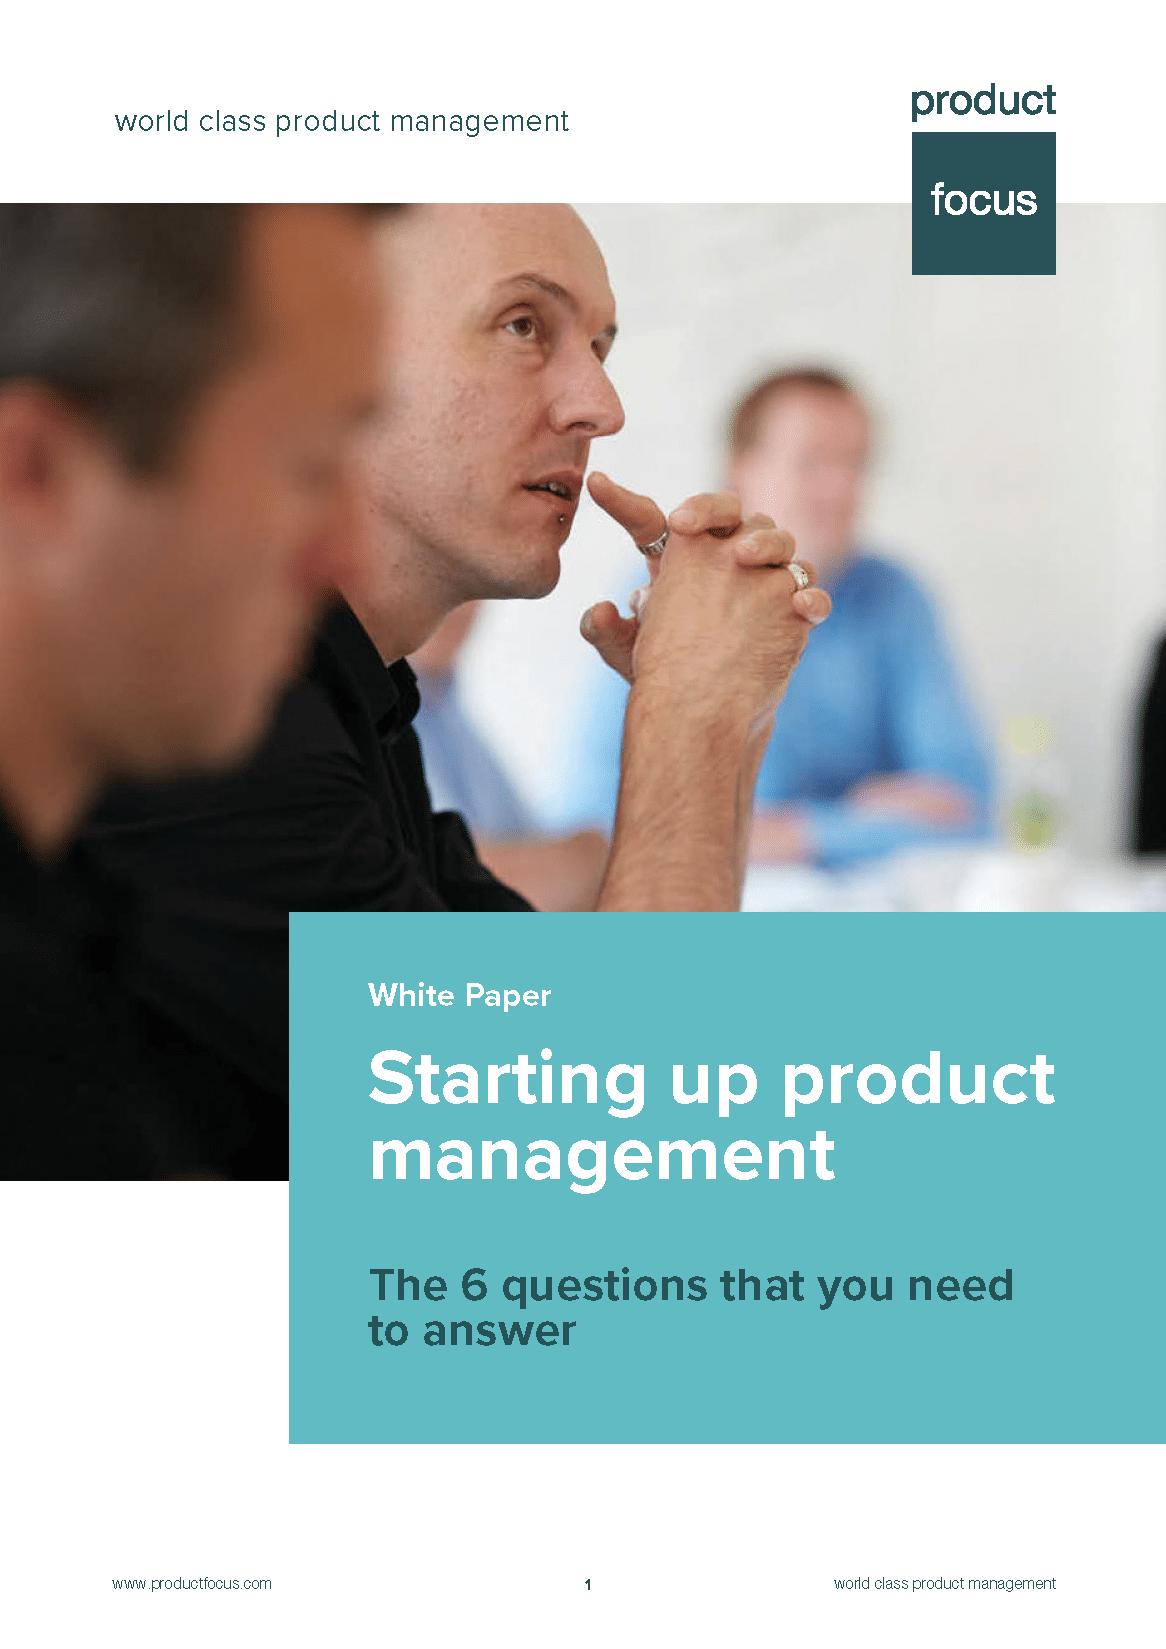 Starting up product management white paper